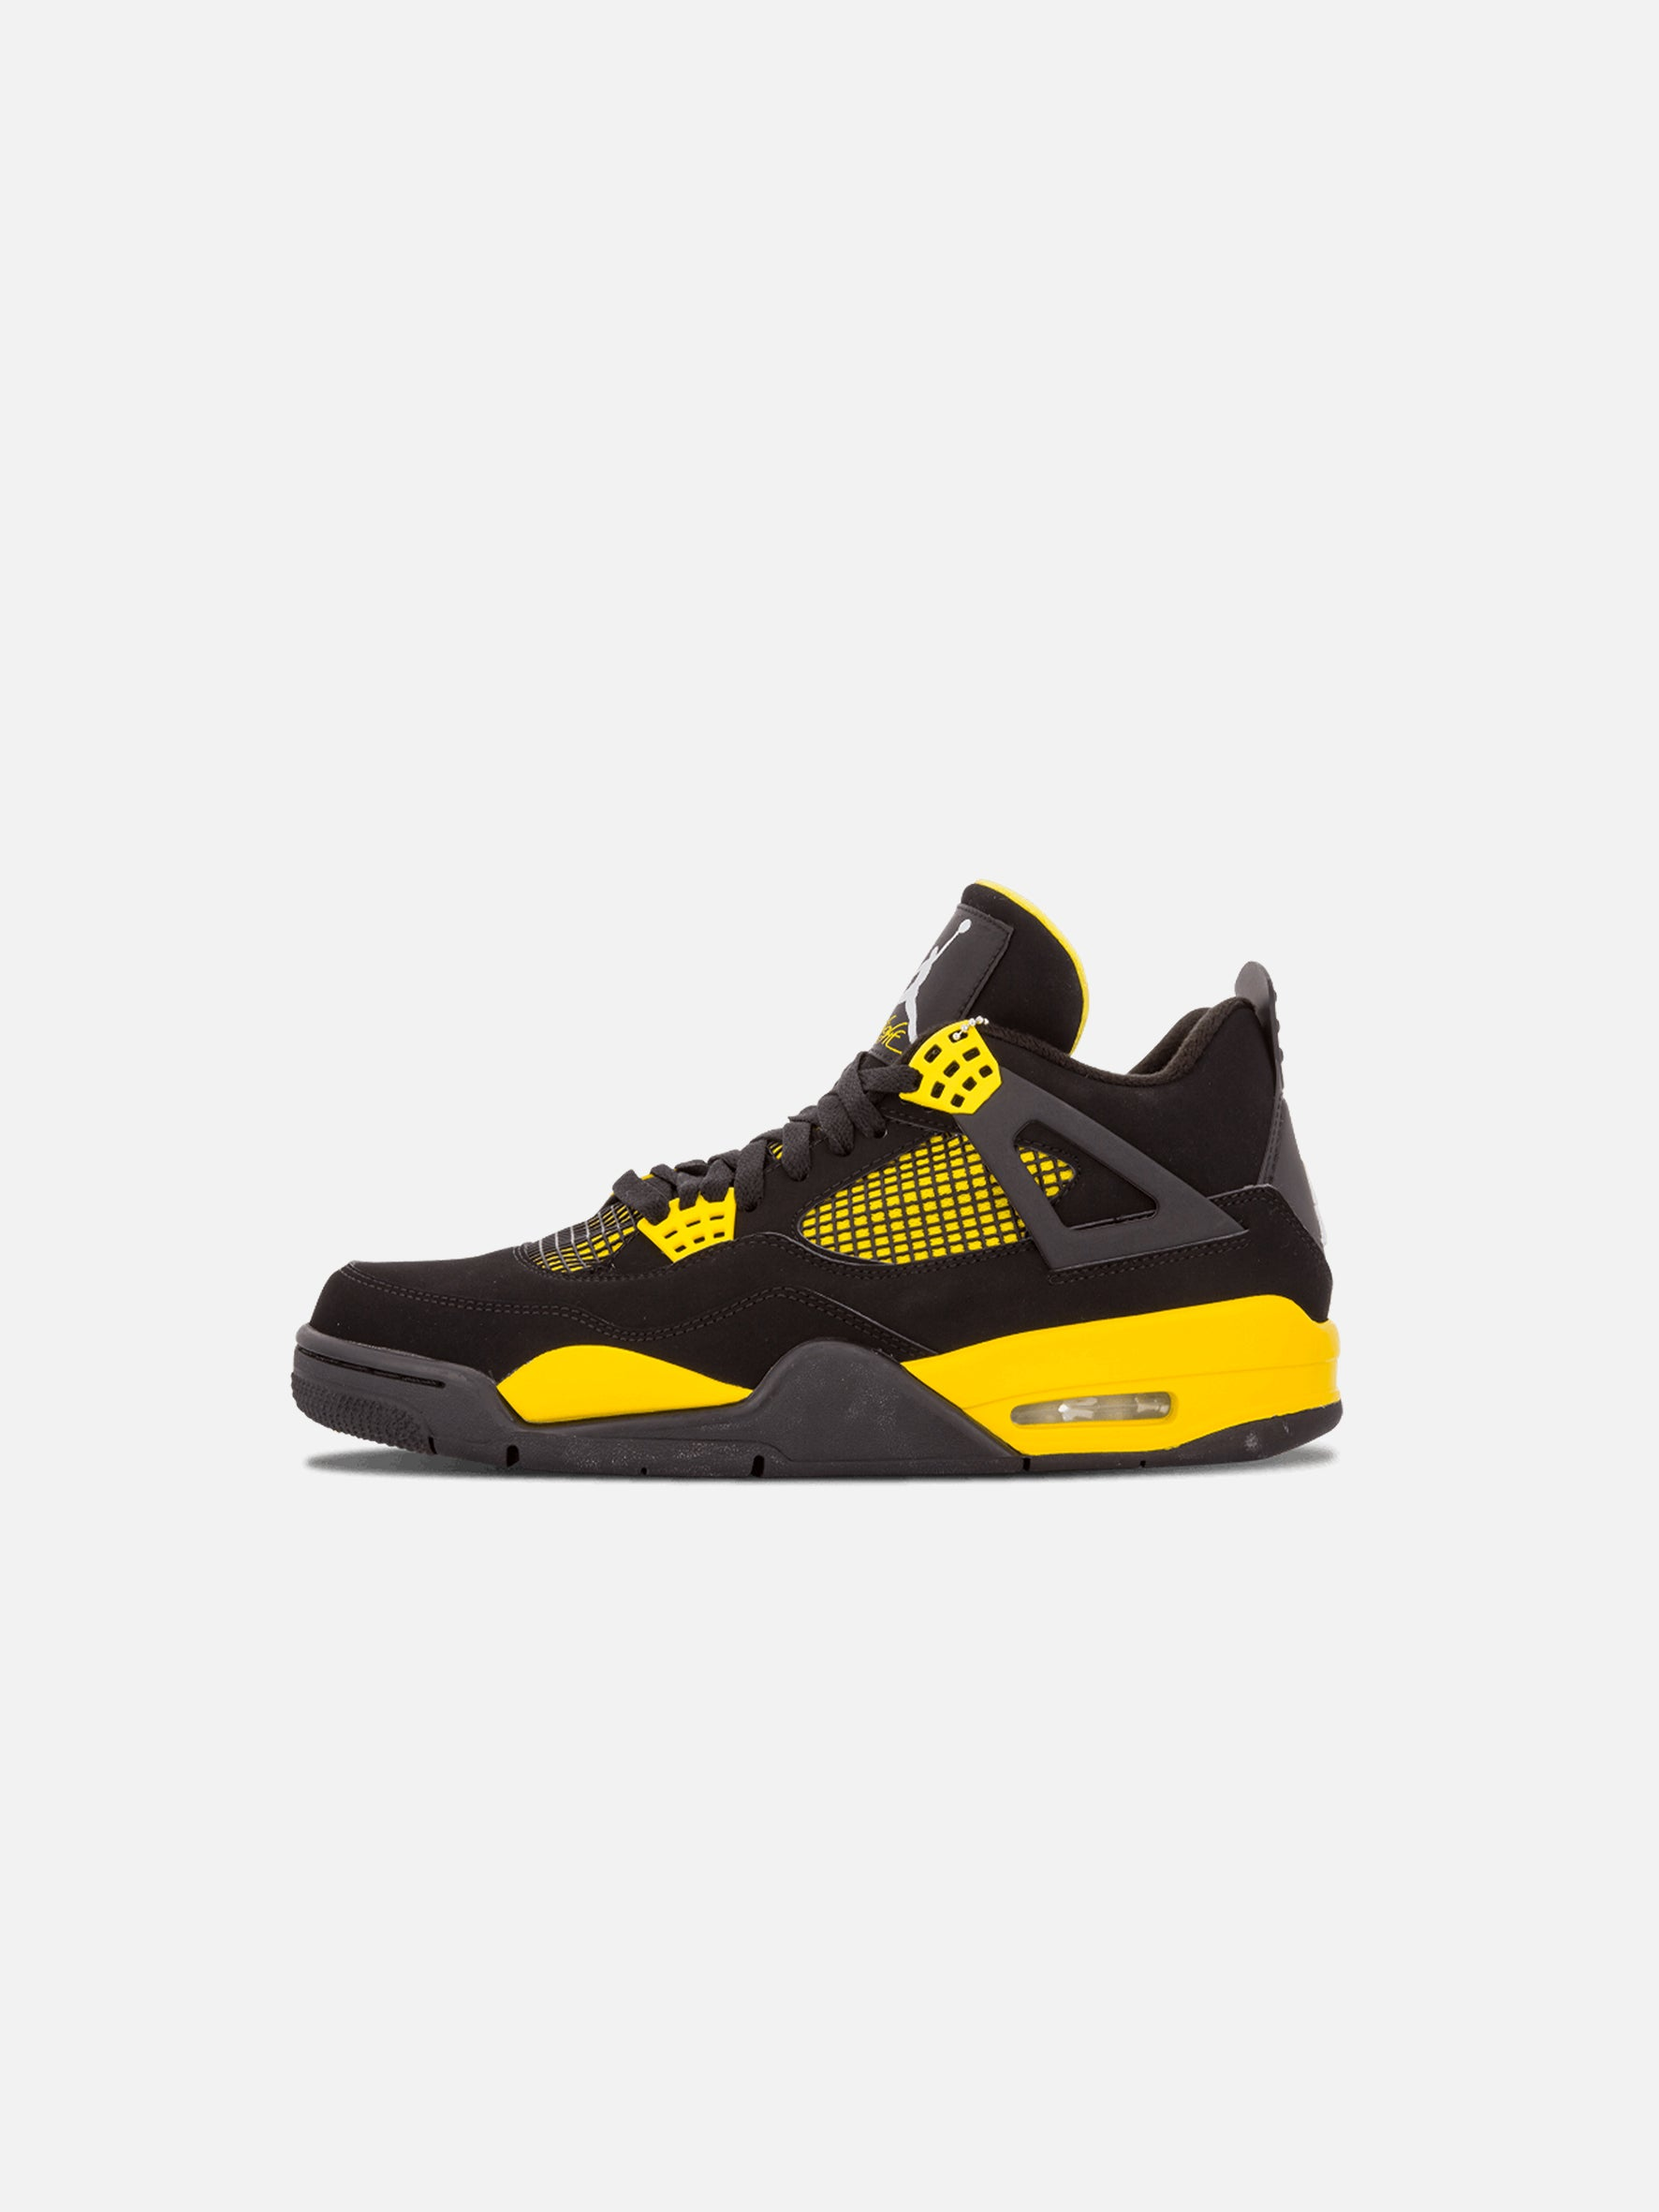 Nike Air Jordan IV Retro Thunder